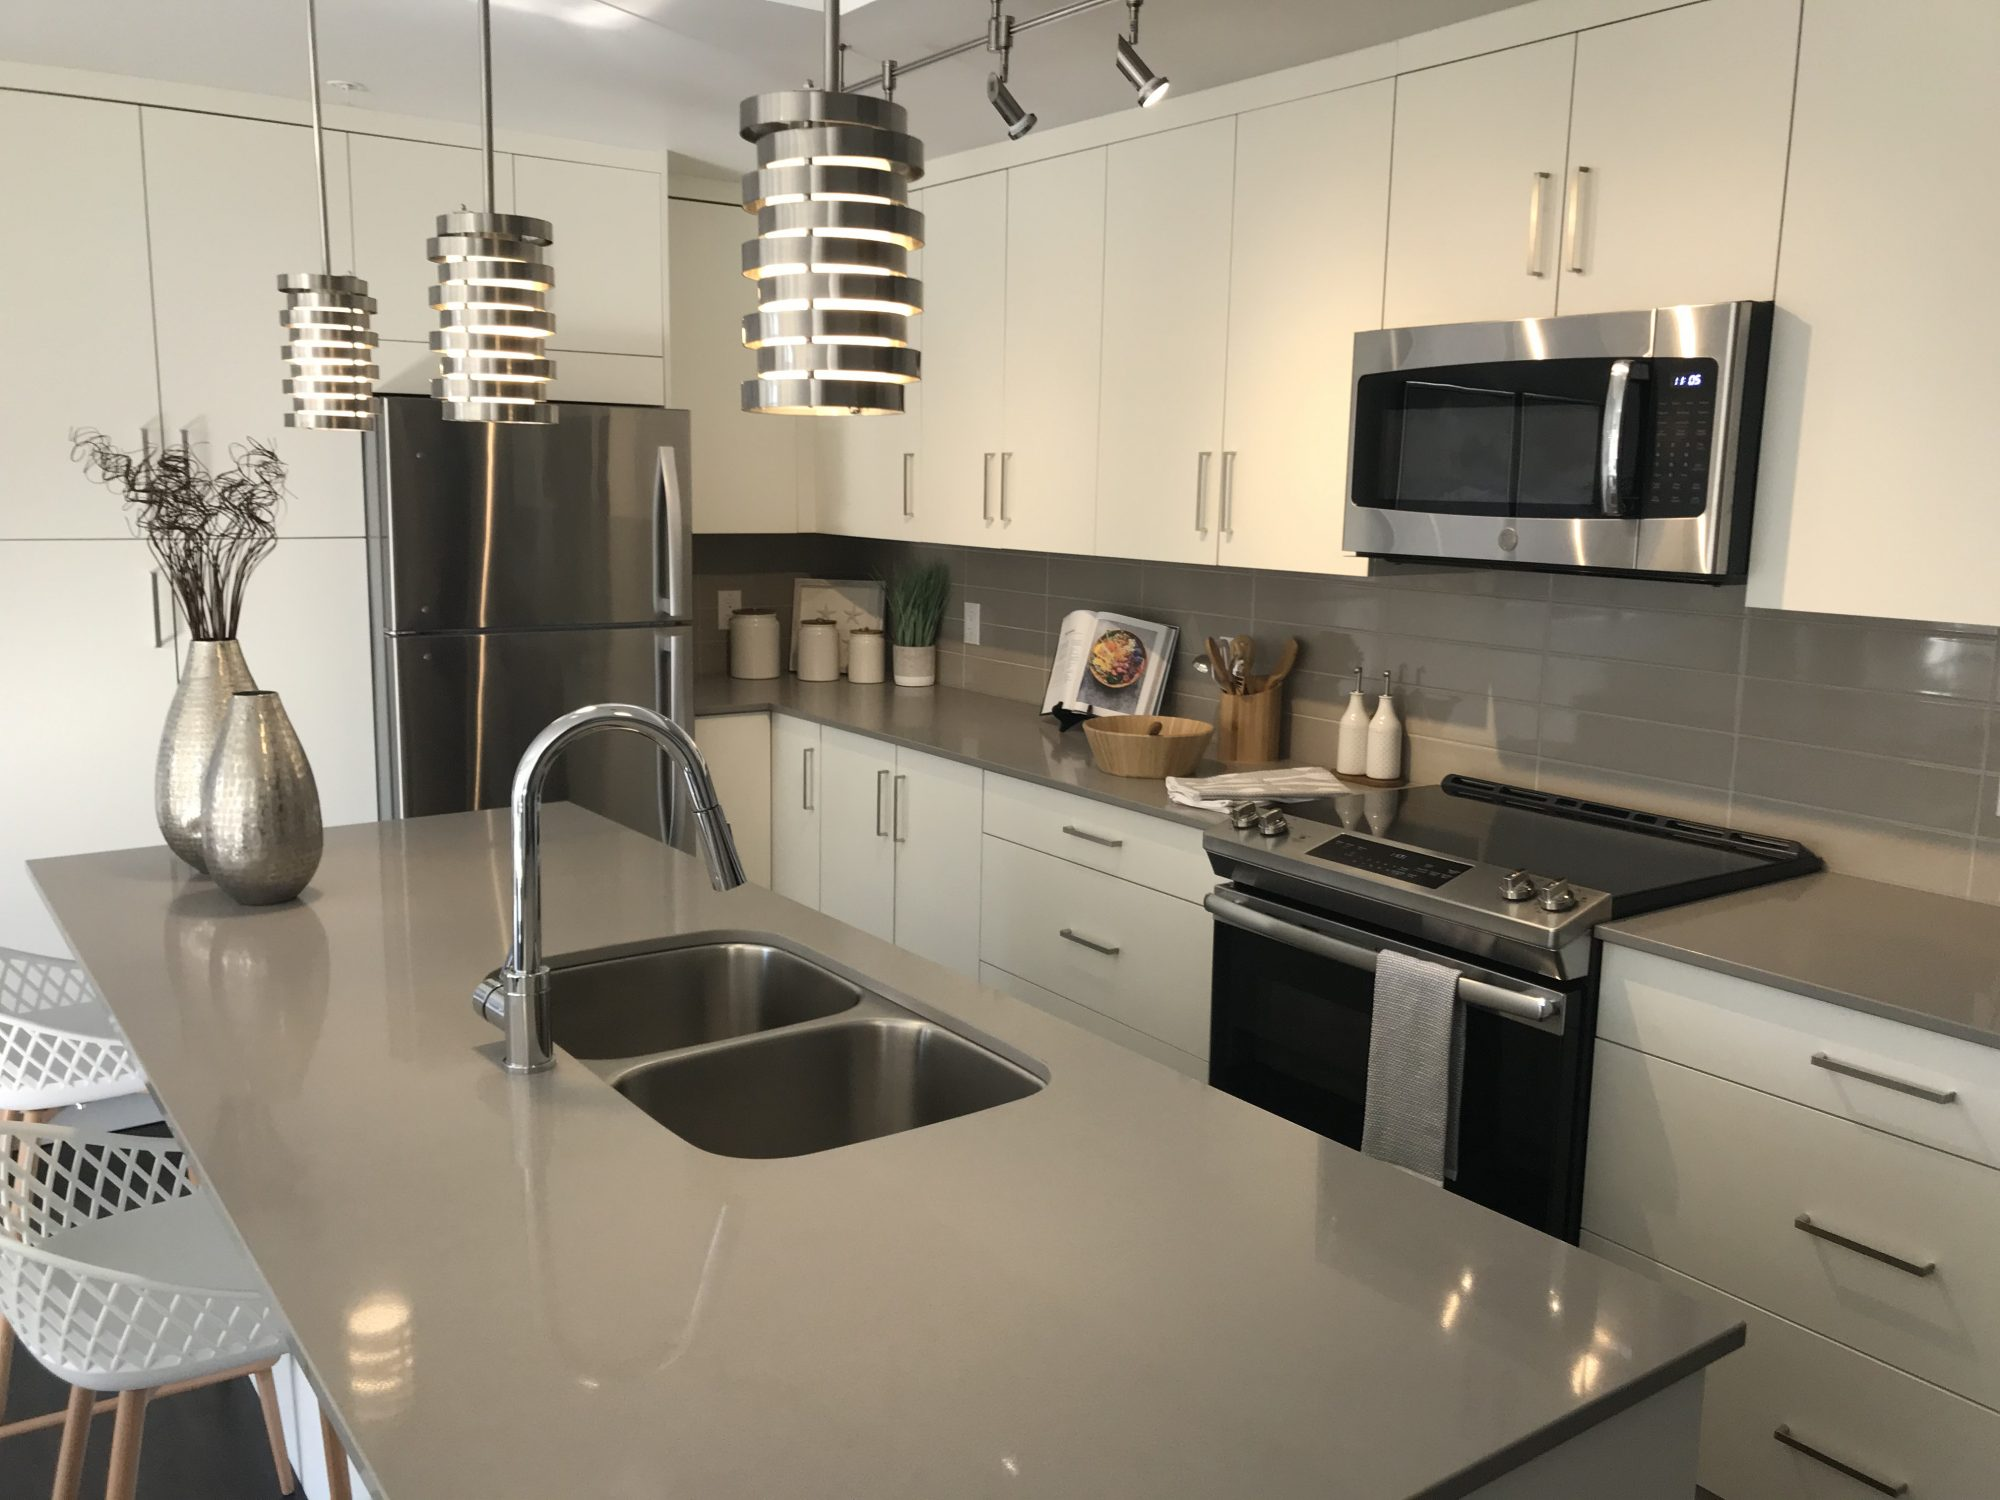 Kitchen filled with modern amenities